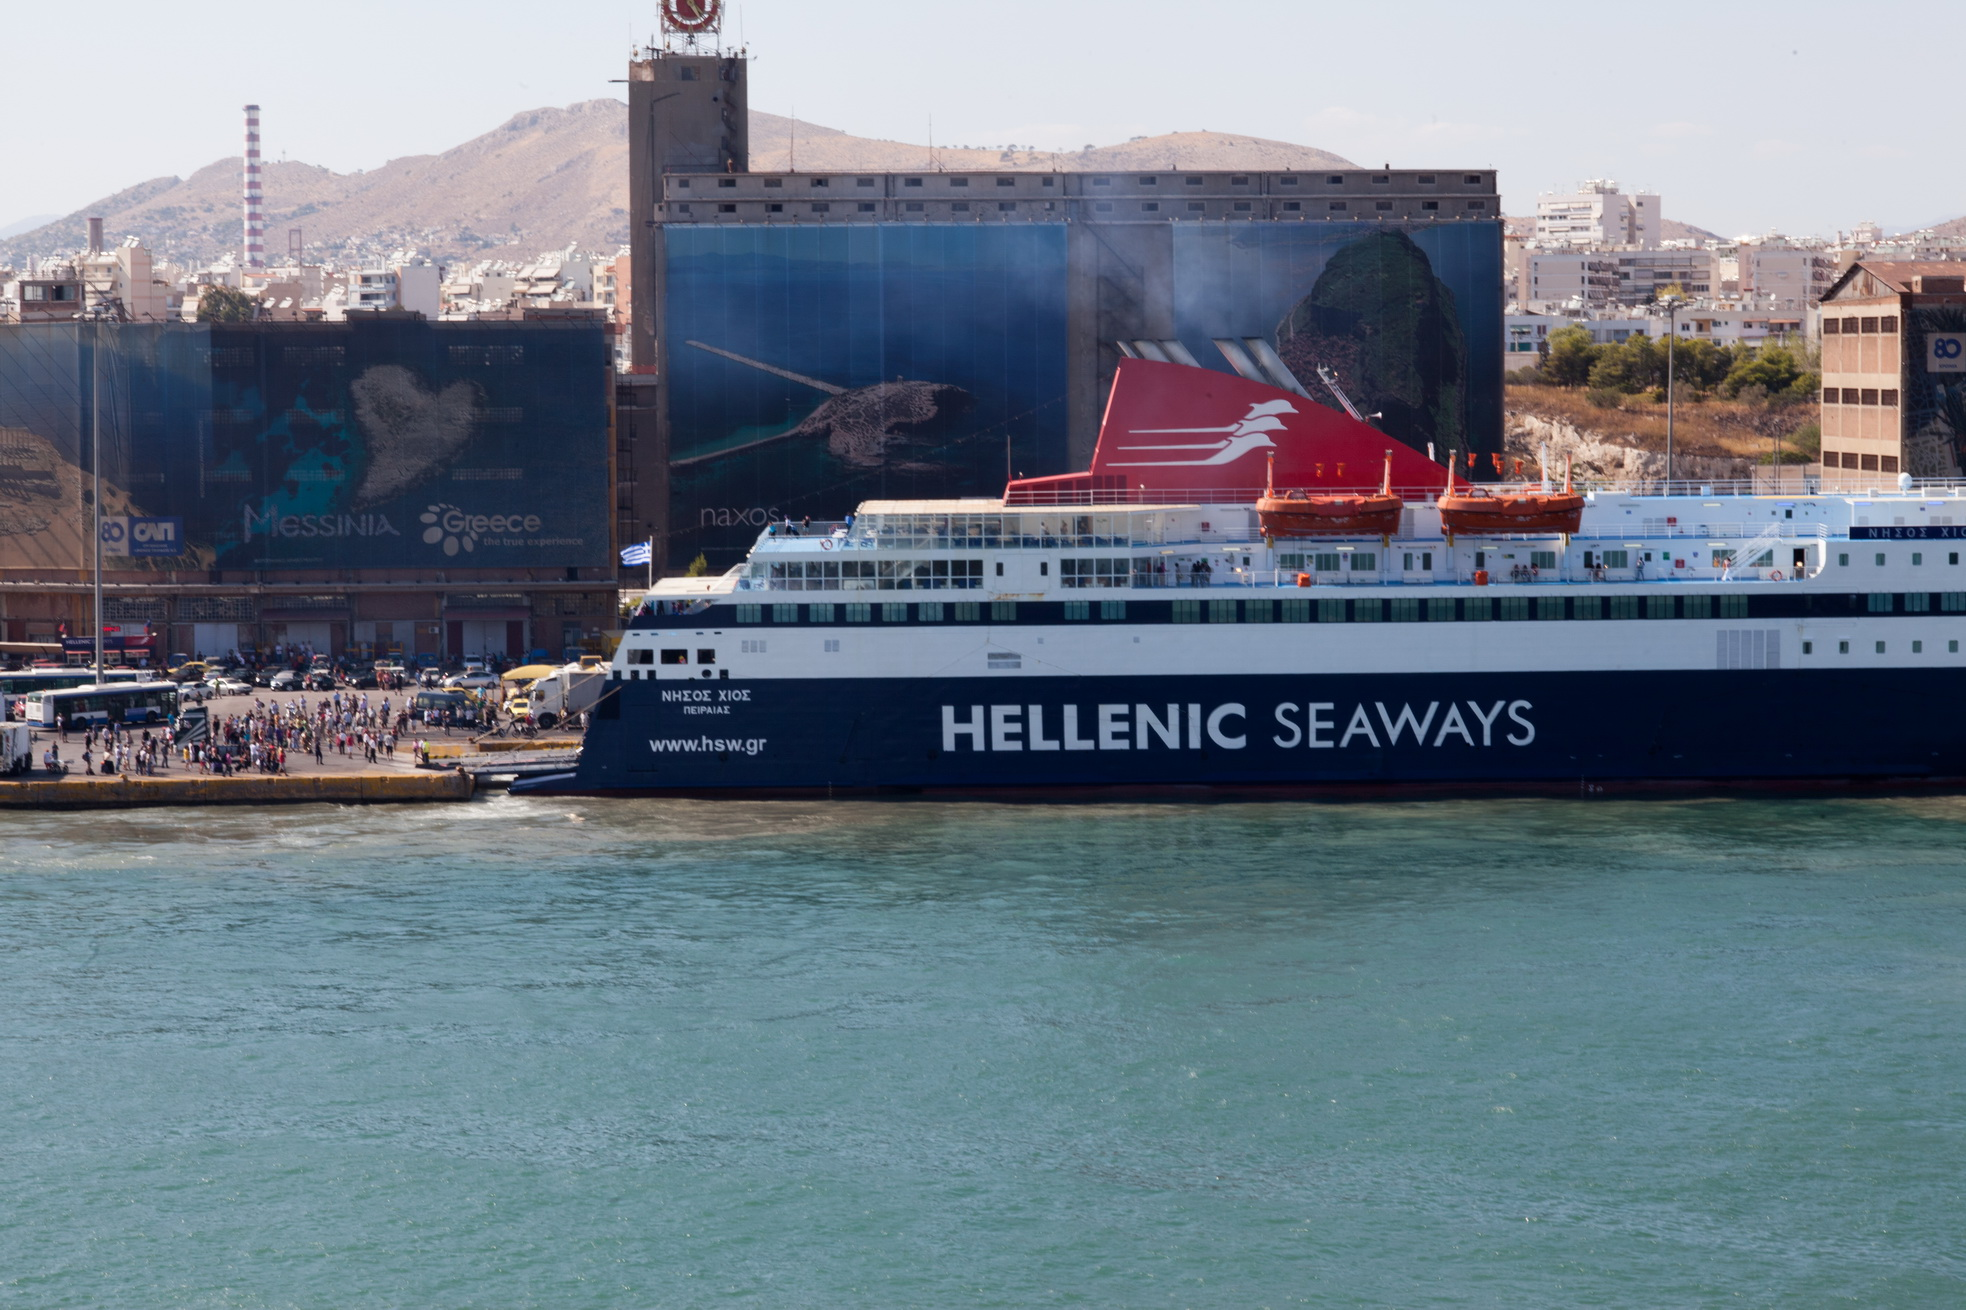 MS Nissos Chios IMO 9215555 Hellenic Seaways docked Piraeus Port of Athens Greece 01